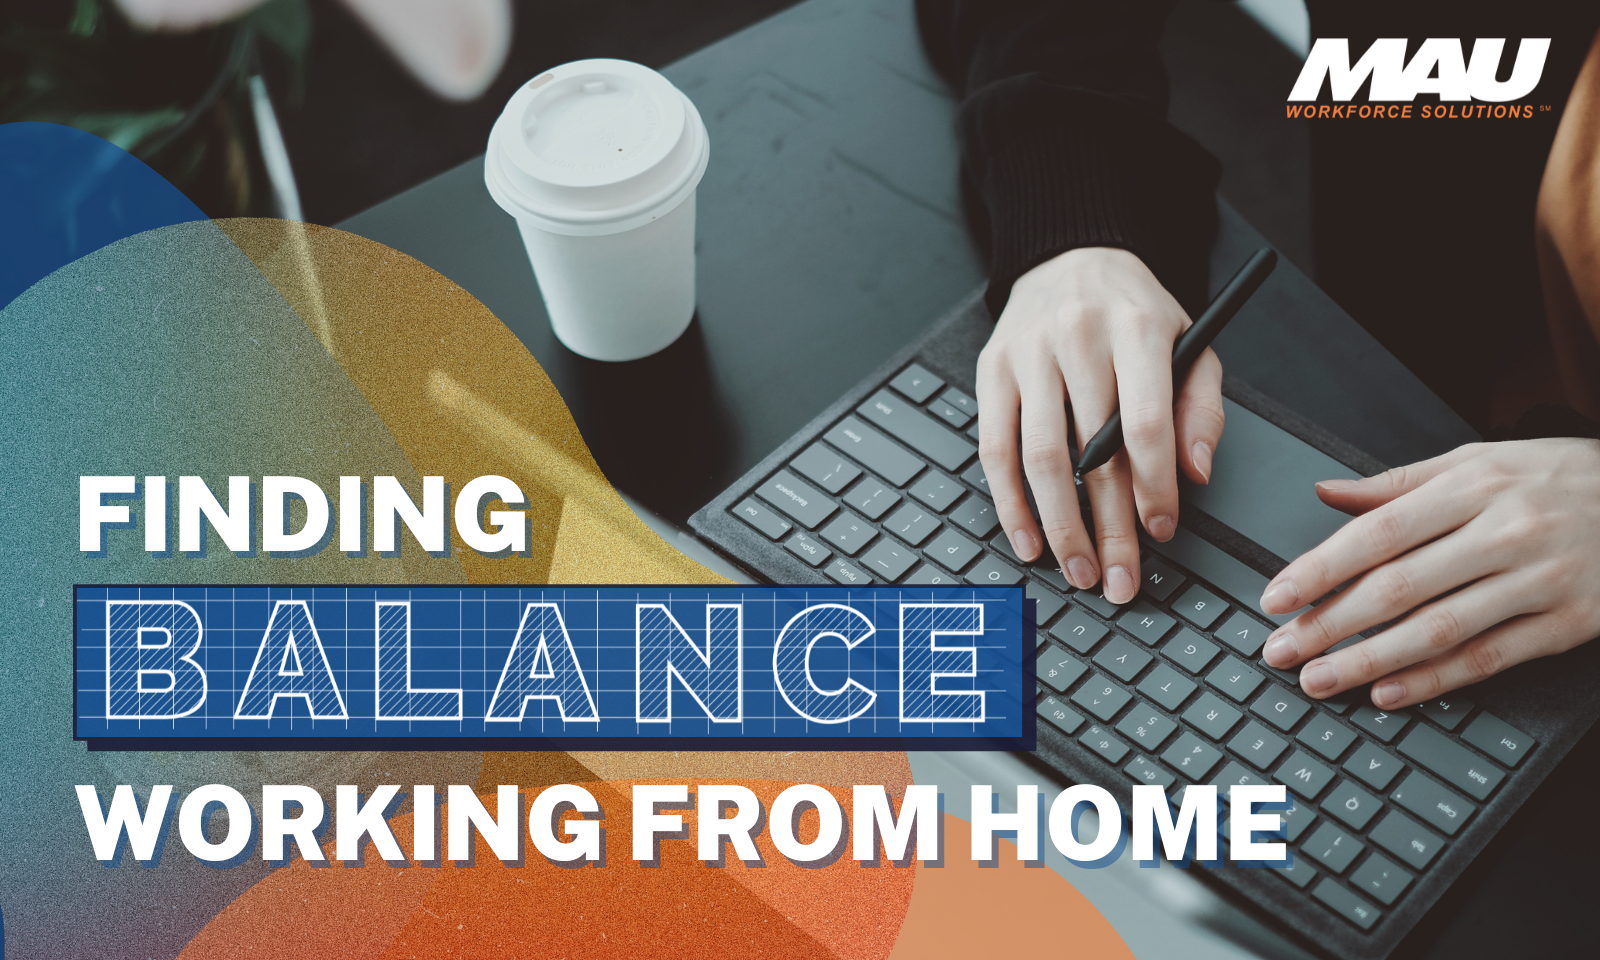 Finding Balance While Working from Home